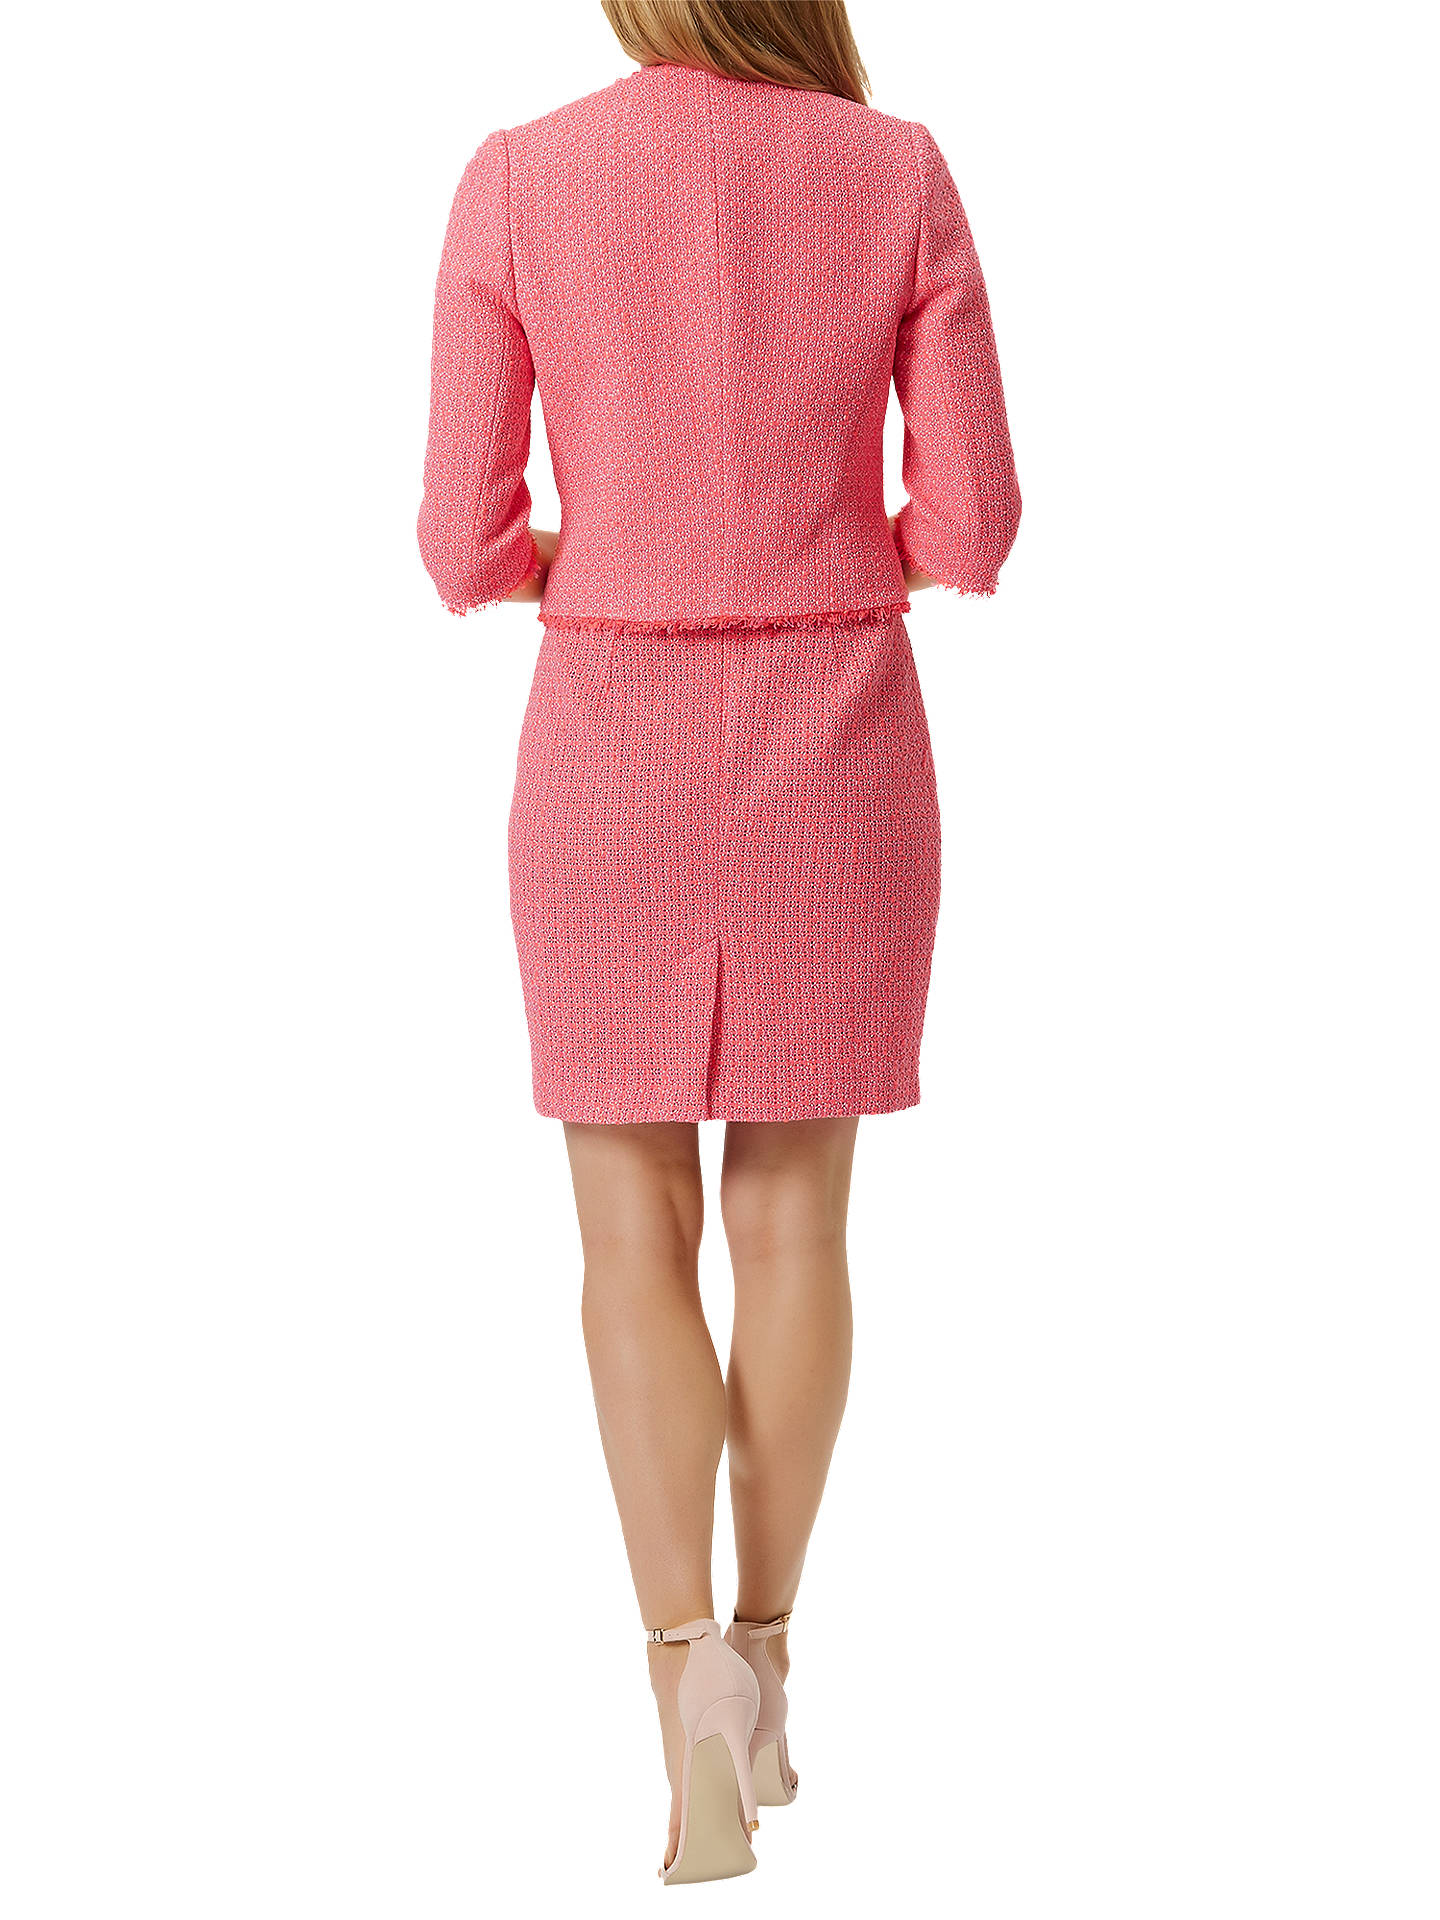 BuyDamsel in a Dress Aquitaine Jacket, Pink, 8 Online at johnlewis.com